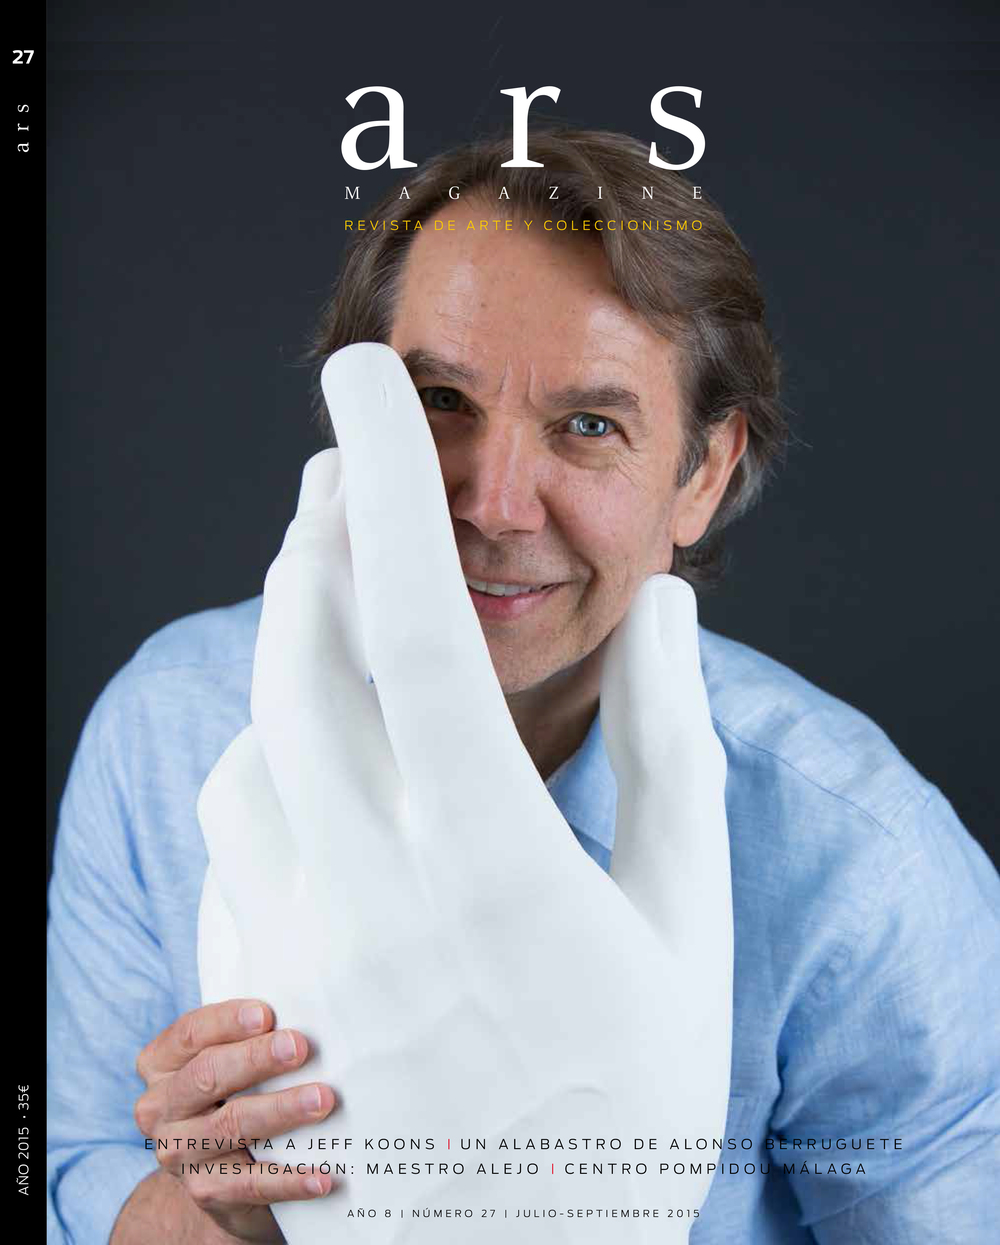 Artist JEFF KOONS for ARS MAGAZINE